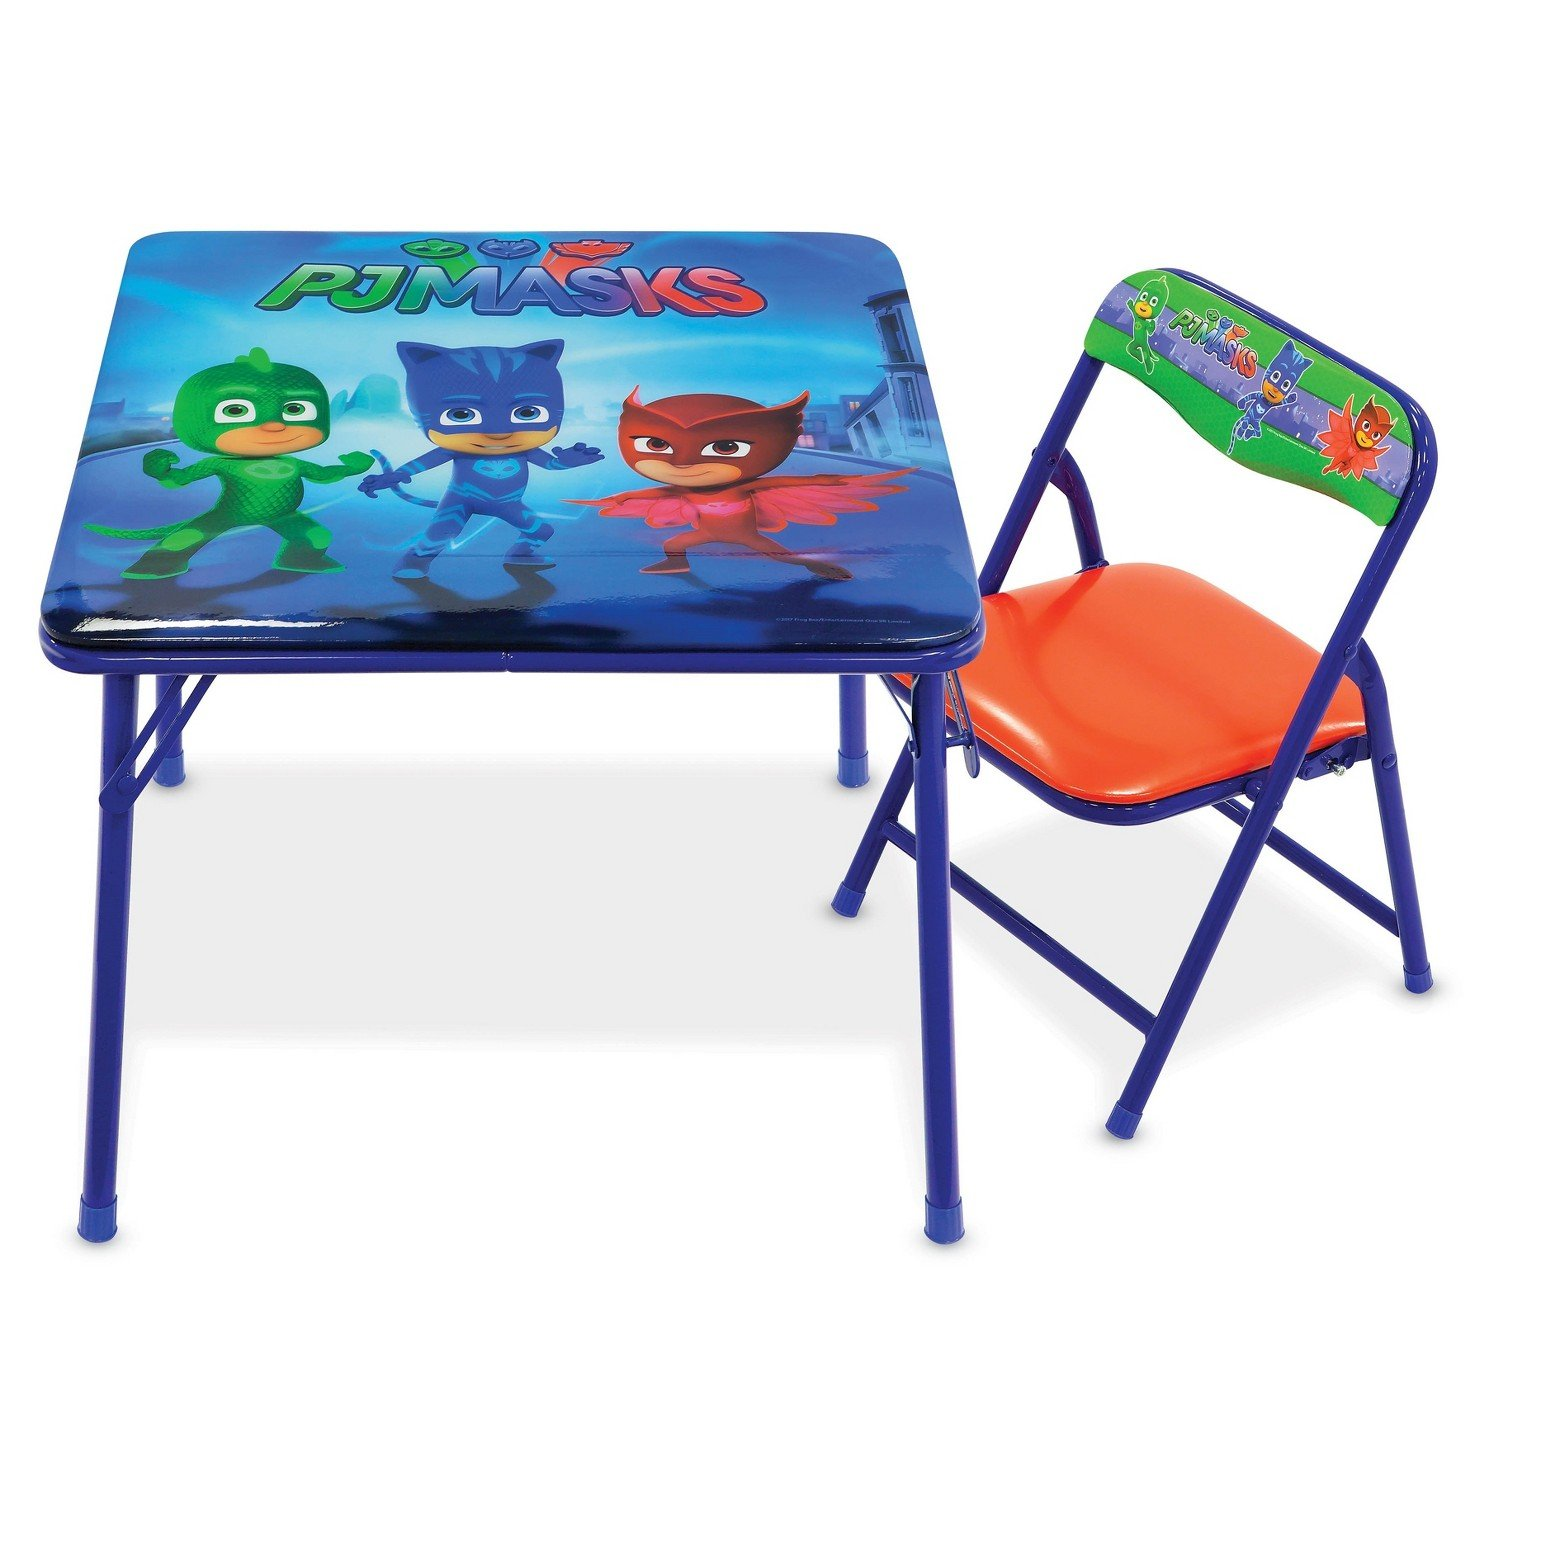 PJ Masks Disney's Jr. Table Set with 1 Chair Activity